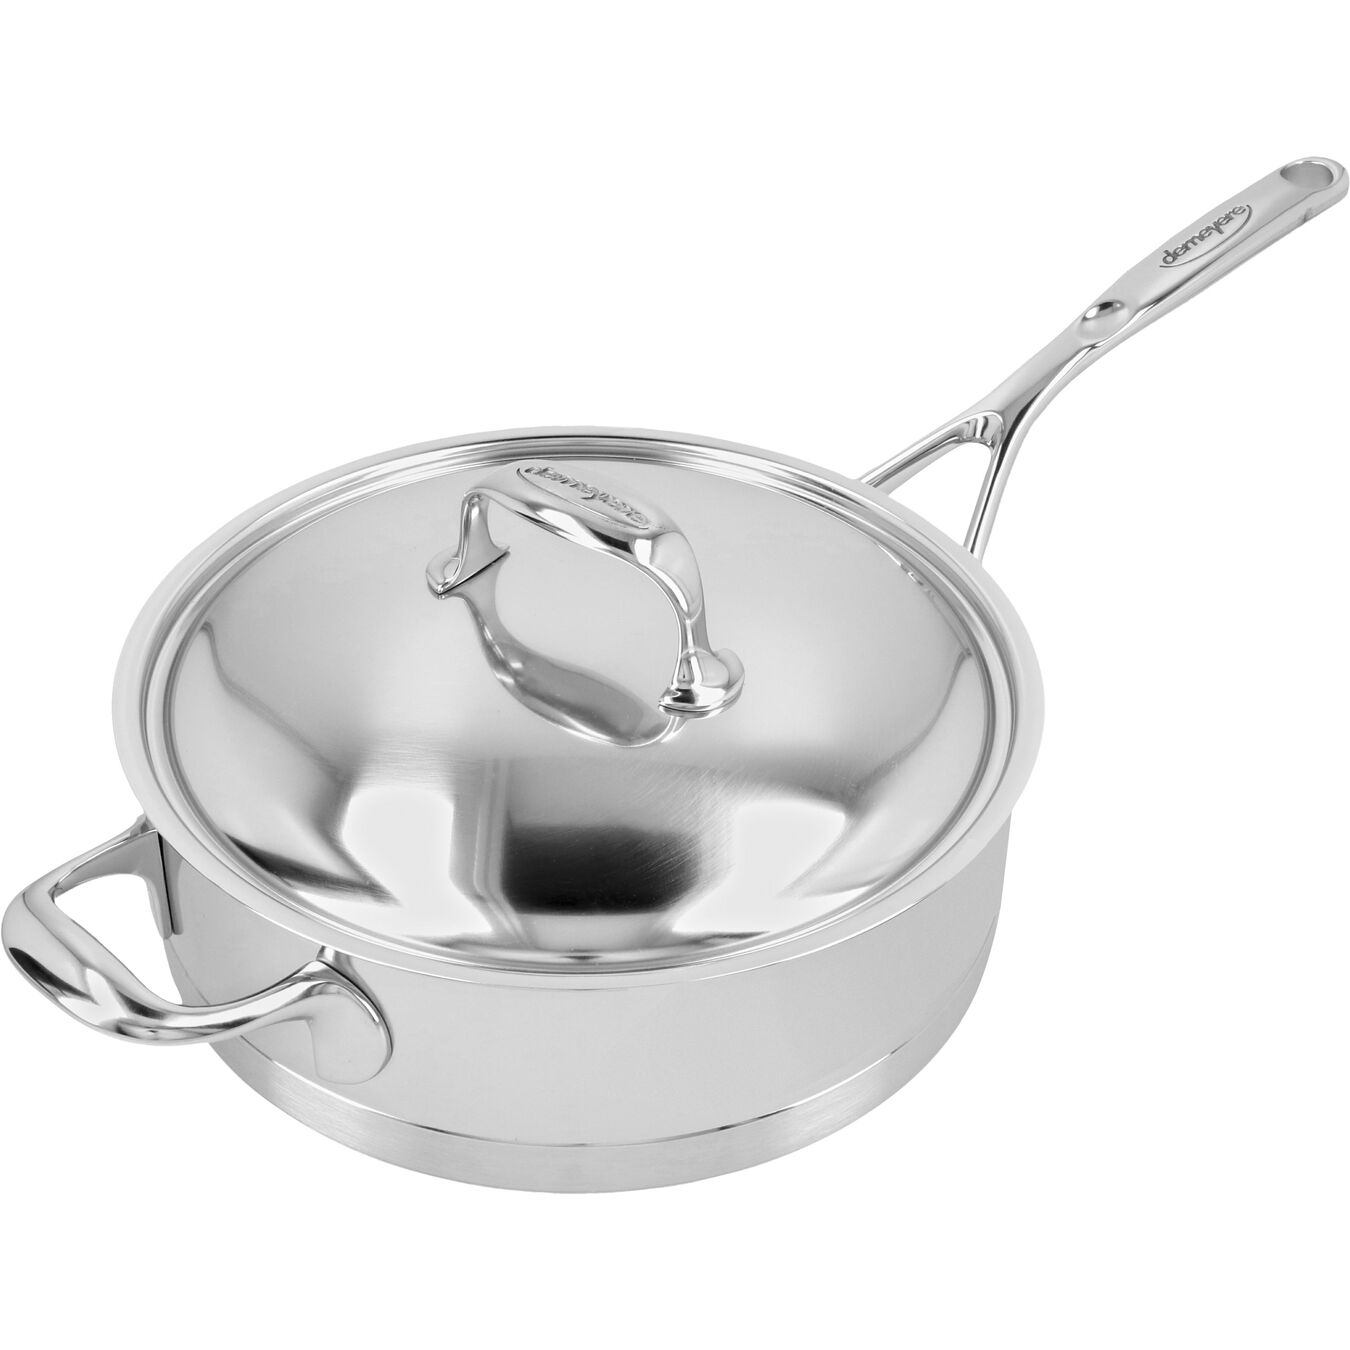 9.5-inch Sauté Pan with Helper Handle and Lid, 18/10 Stainless Steel ,,large 3